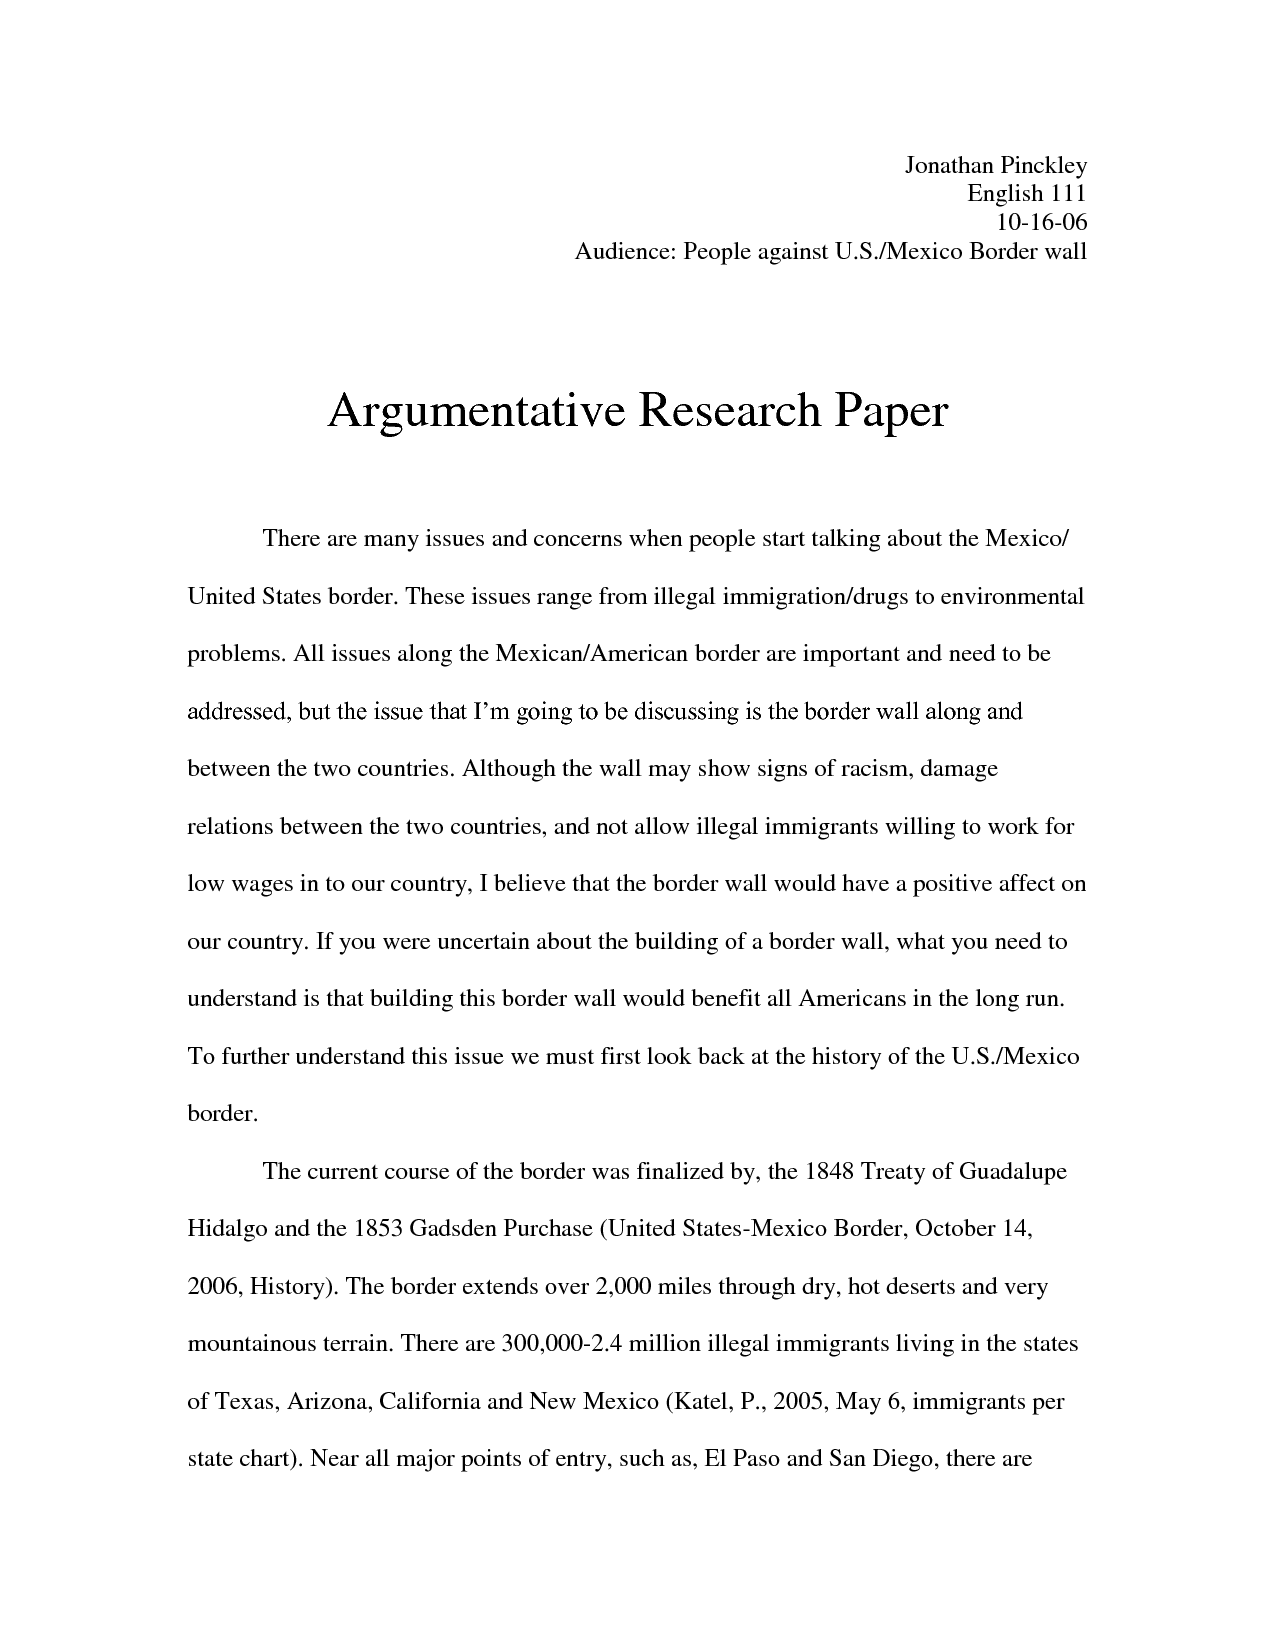 014 Topics For Argumentative Research Paper Uncategorized Debate20y Thesis High School Sentence Starters Outline Worksheet Wonderful Interesting Medical Full